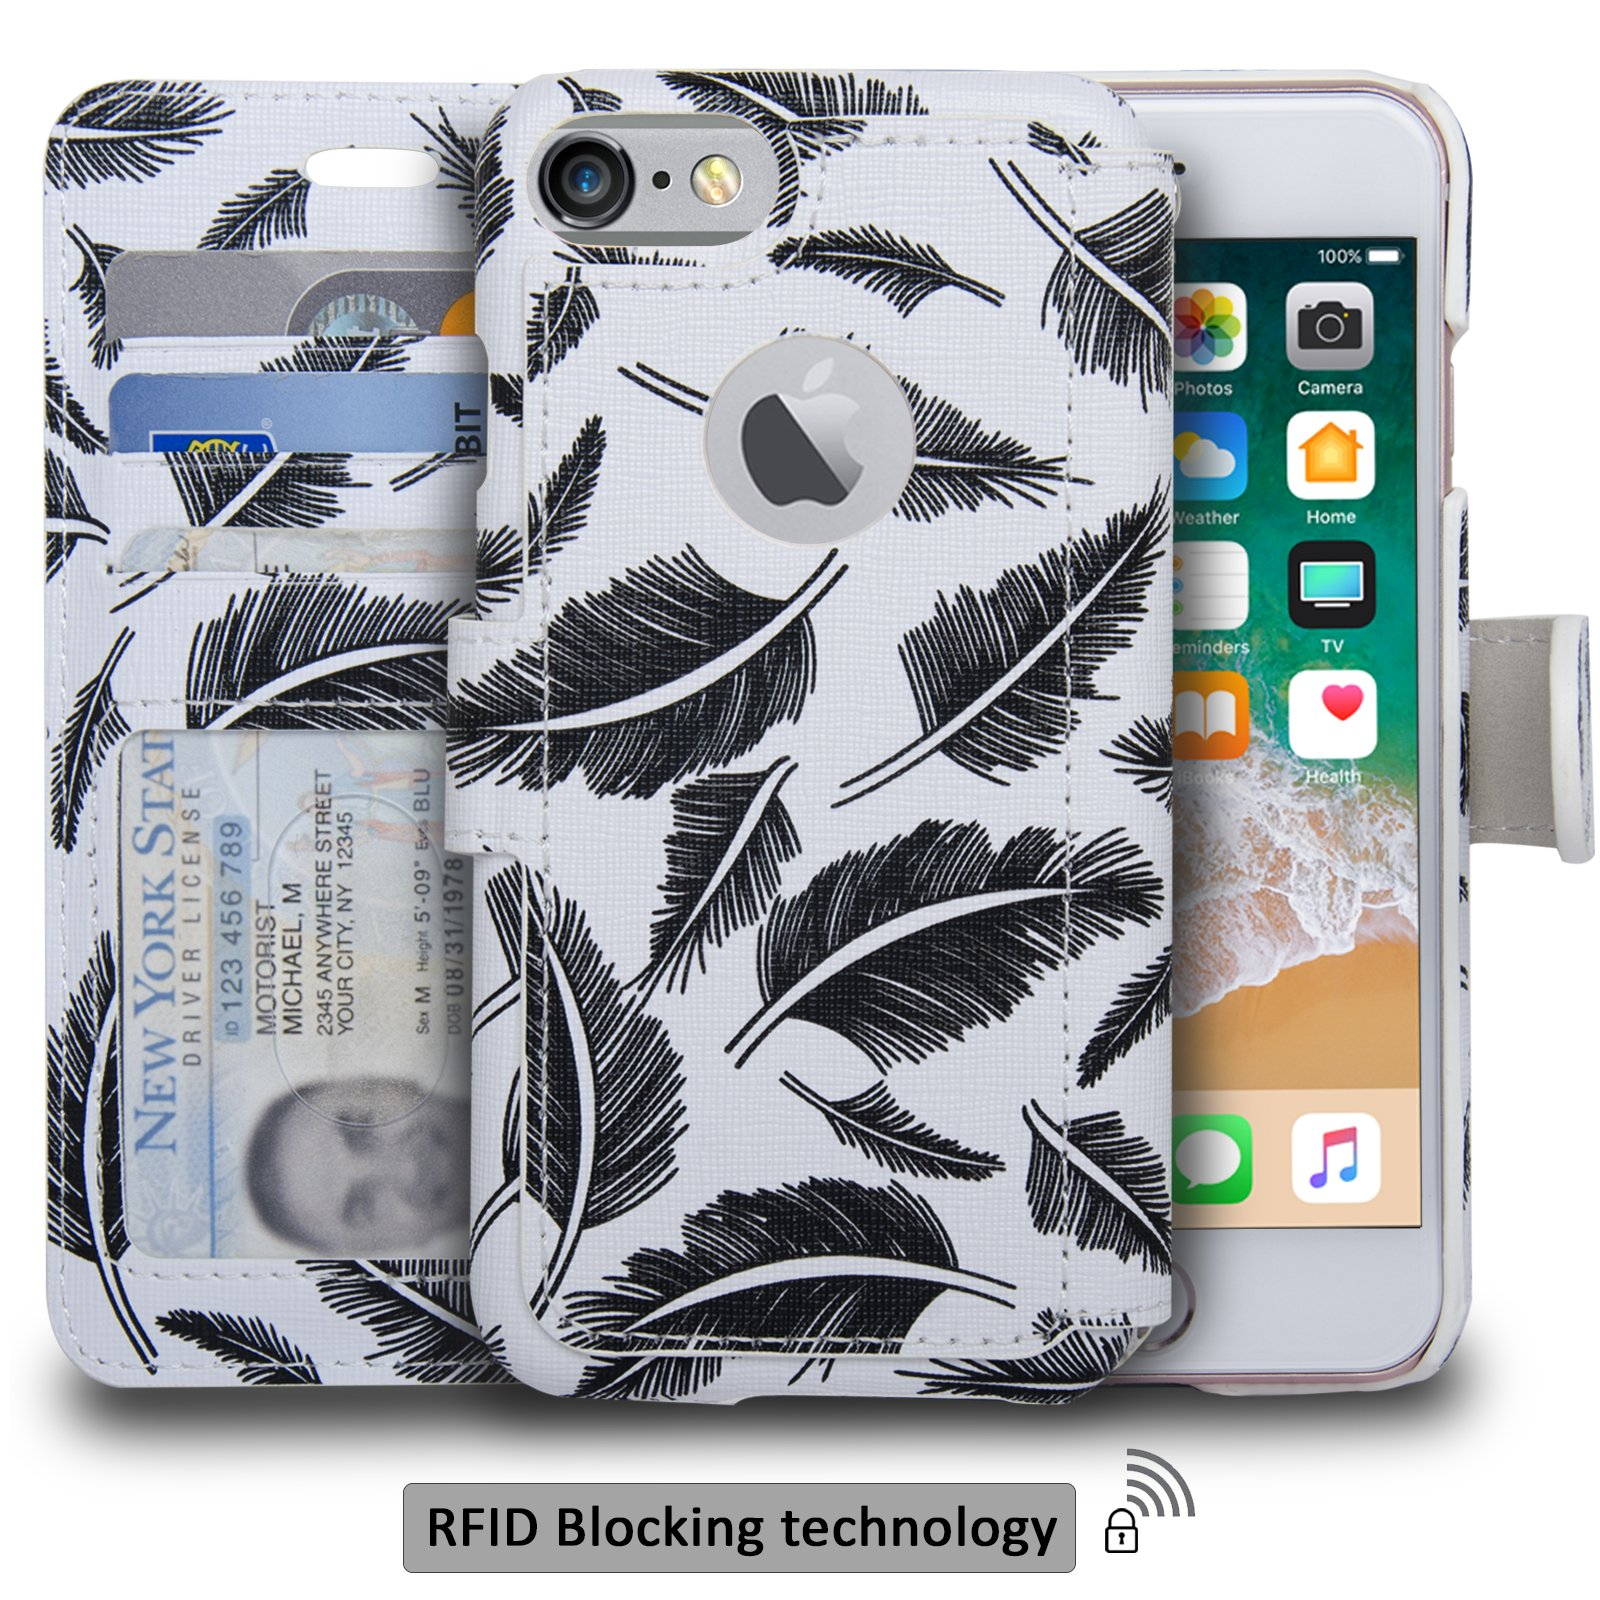 navor Slim & Light Premium Flip Wallet Case with RFID Protection Compatible for iPhone 7 & 8 - [4.7 inch] (Zevo S2 Series) - Oliver